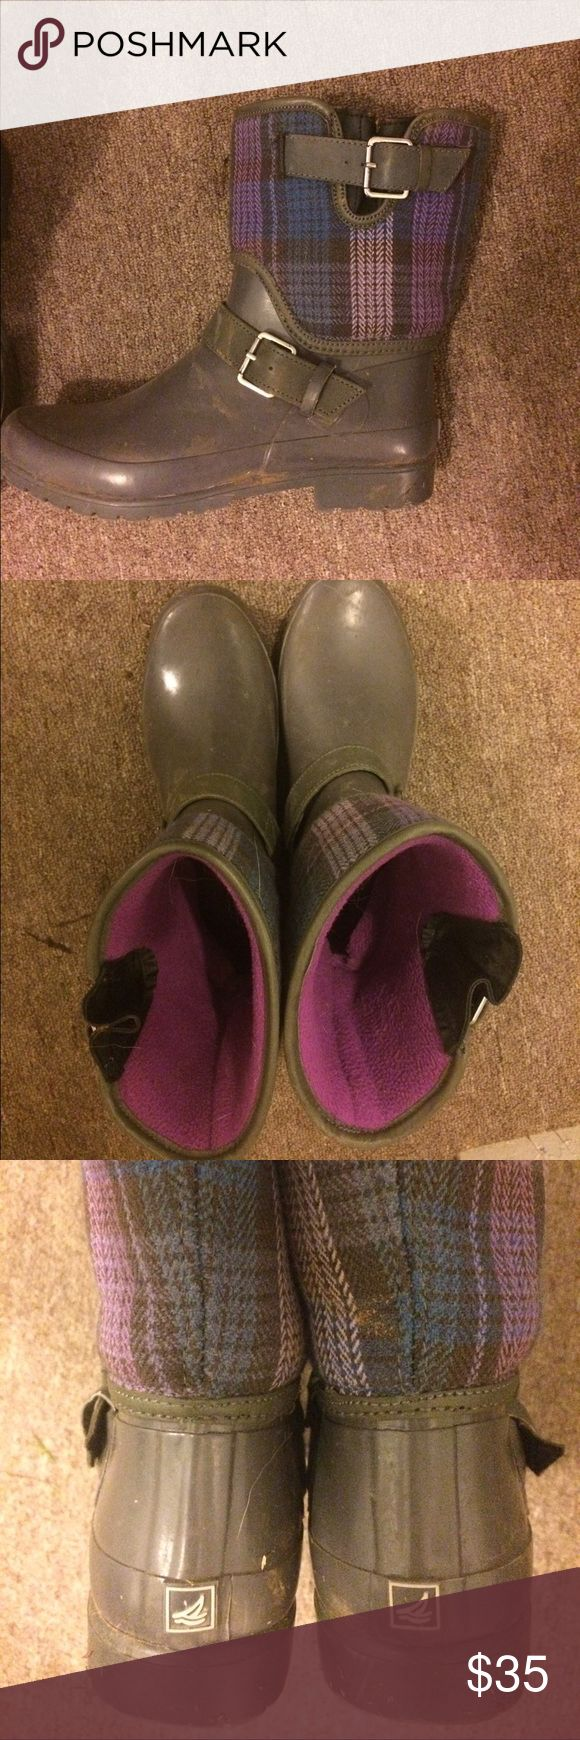 Sperry rain boots Sperry ankle rain boots. Gray with purple and blue plaid pattern. Warm fleece lining. Very cute! Can clean before shipping Sperry Shoes Winter & Rain Boots